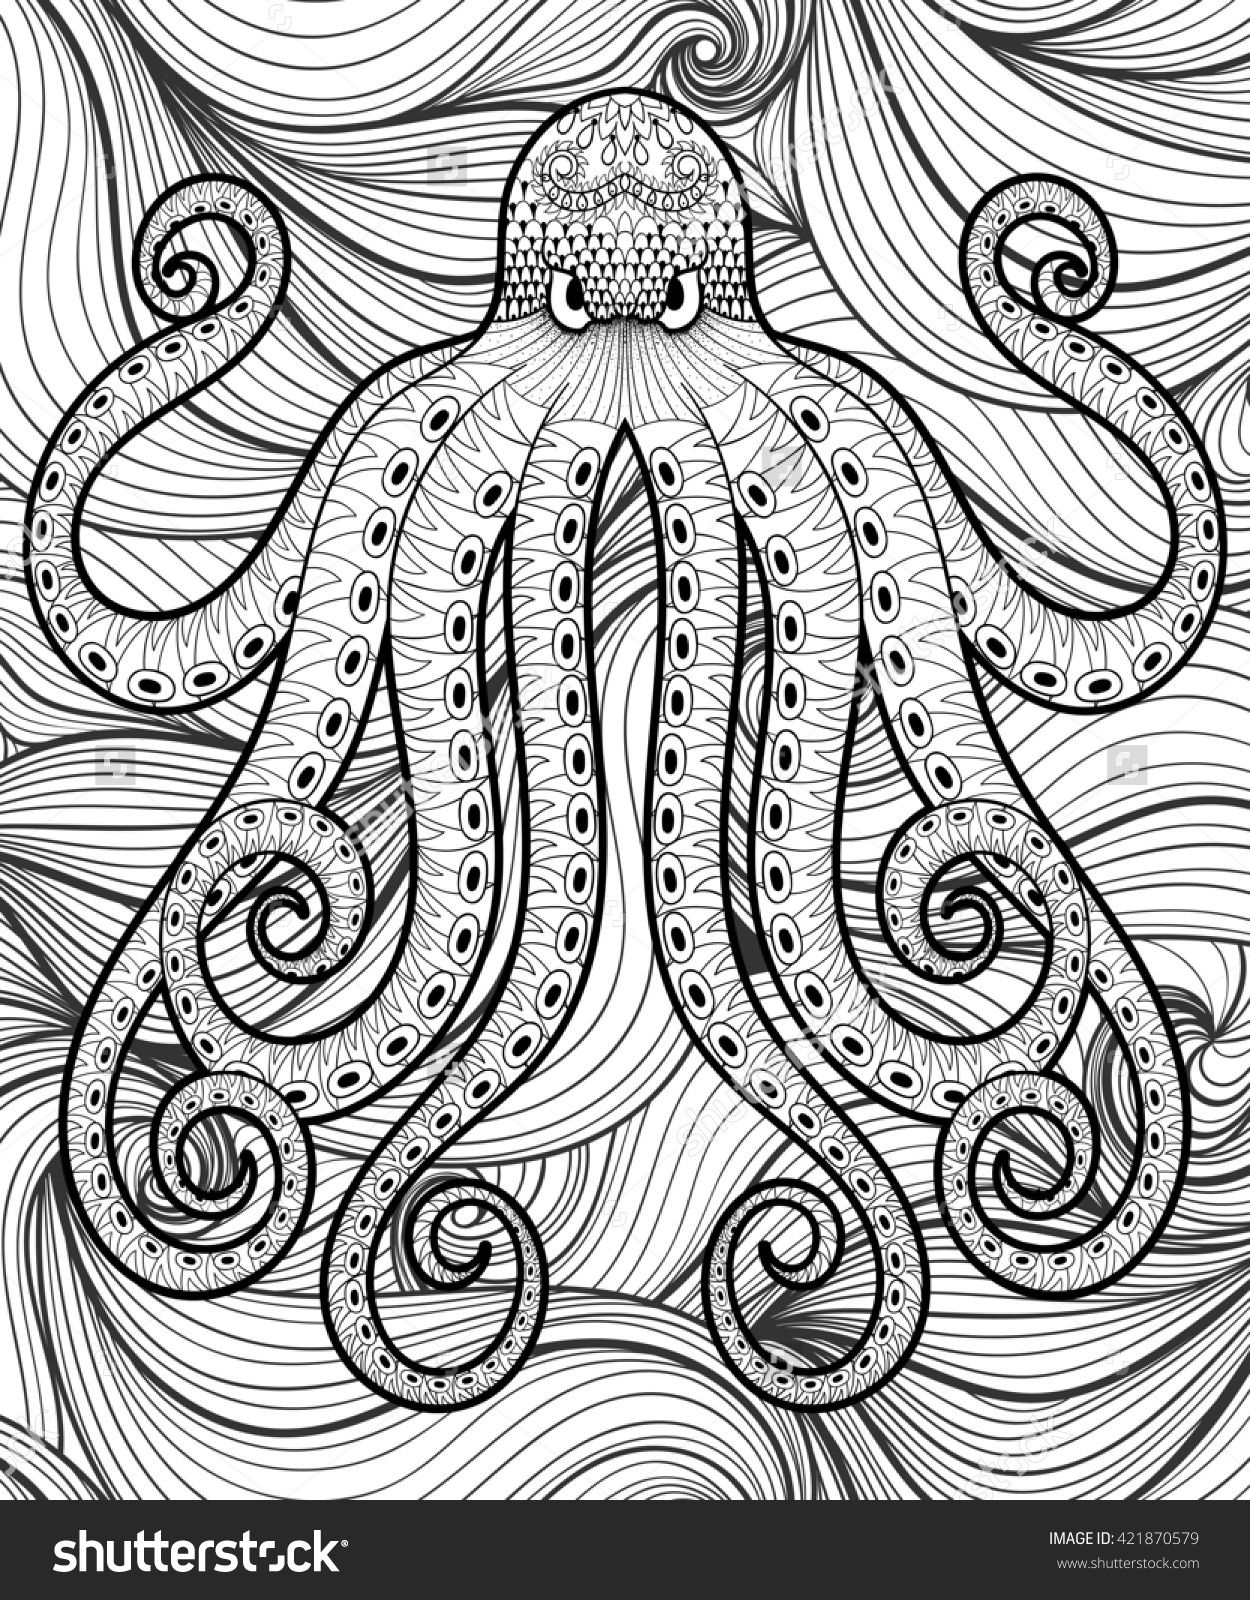 mandala octopus coloring page octopus colorful meditations coloring book by stephanie octopus coloring page mandala